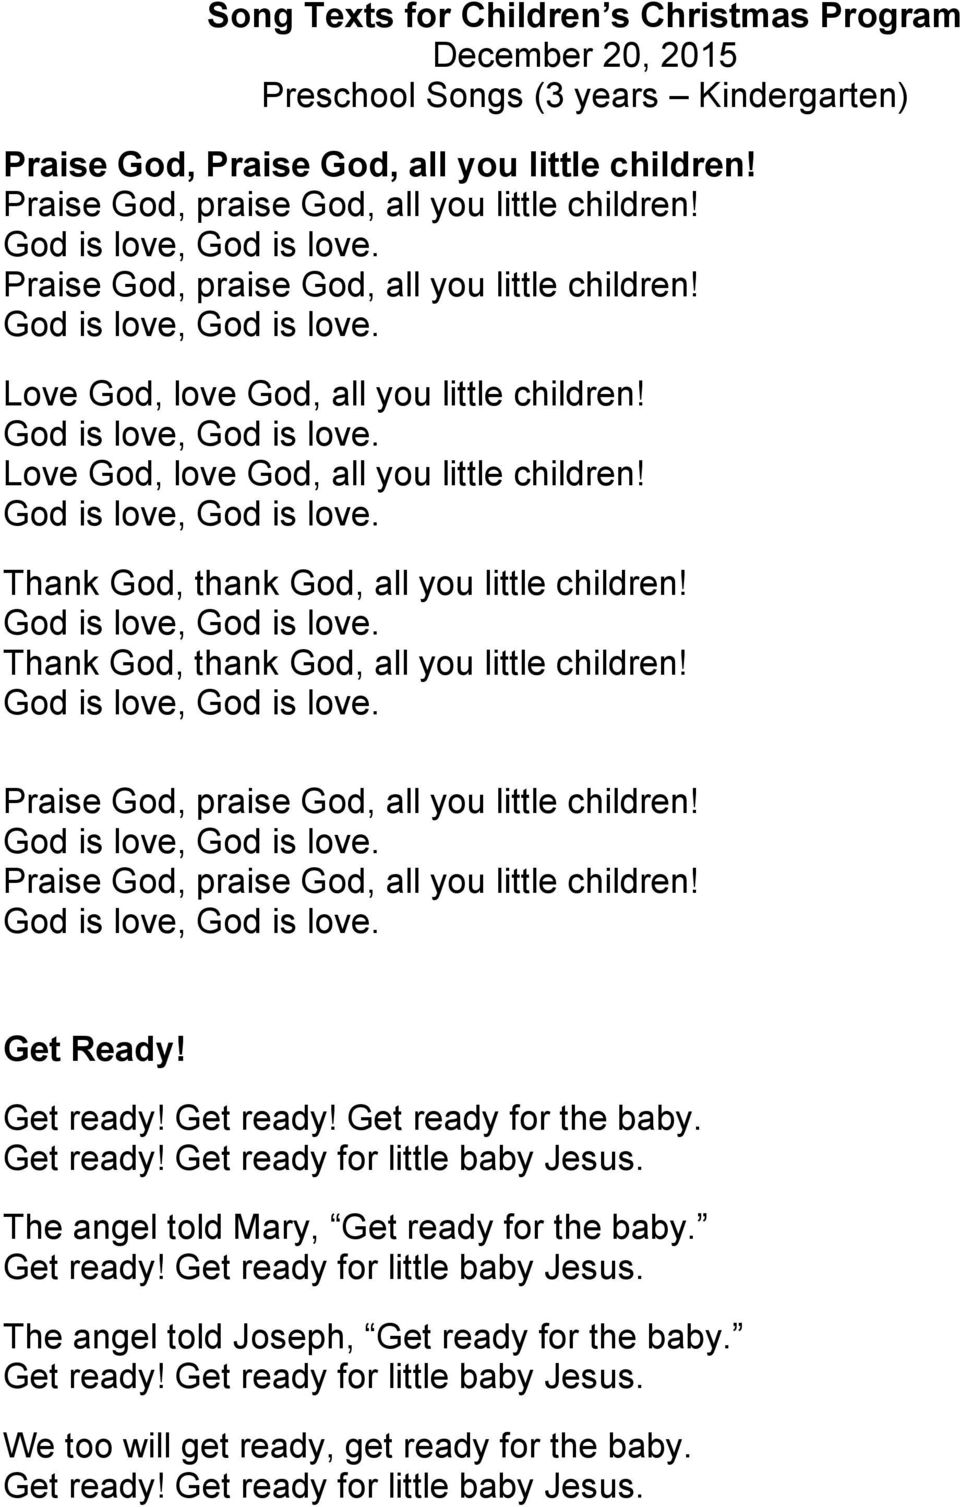 Song Texts for Children s Christmas Program December 20, 2015 ...